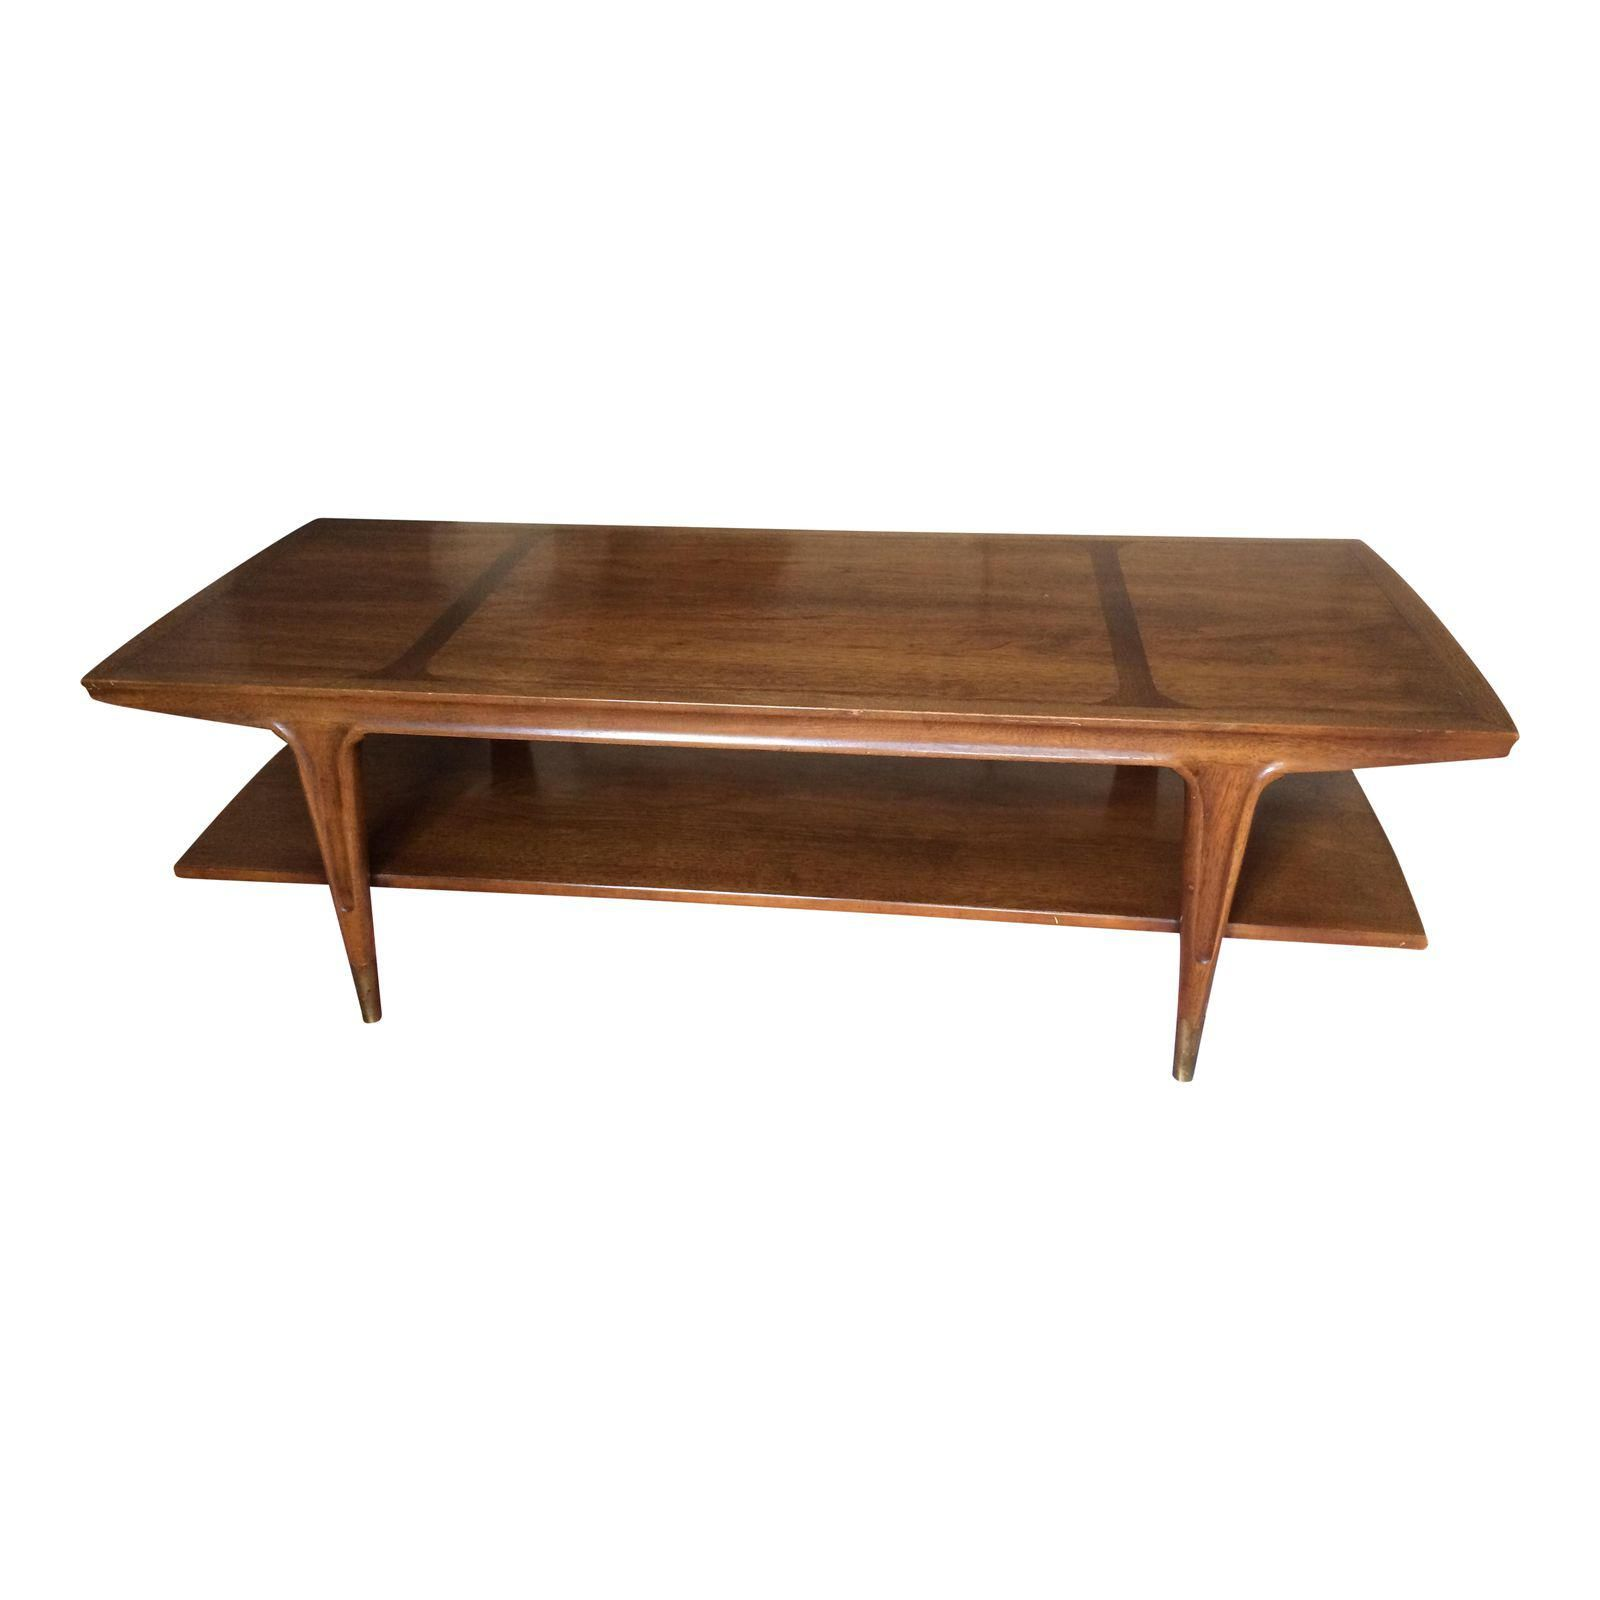 Image Of Mid Century Modern Coffee Table Coffee Table Mid Century Modern Coffee Table Modern Coffee Tables [ 1600 x 1600 Pixel ]